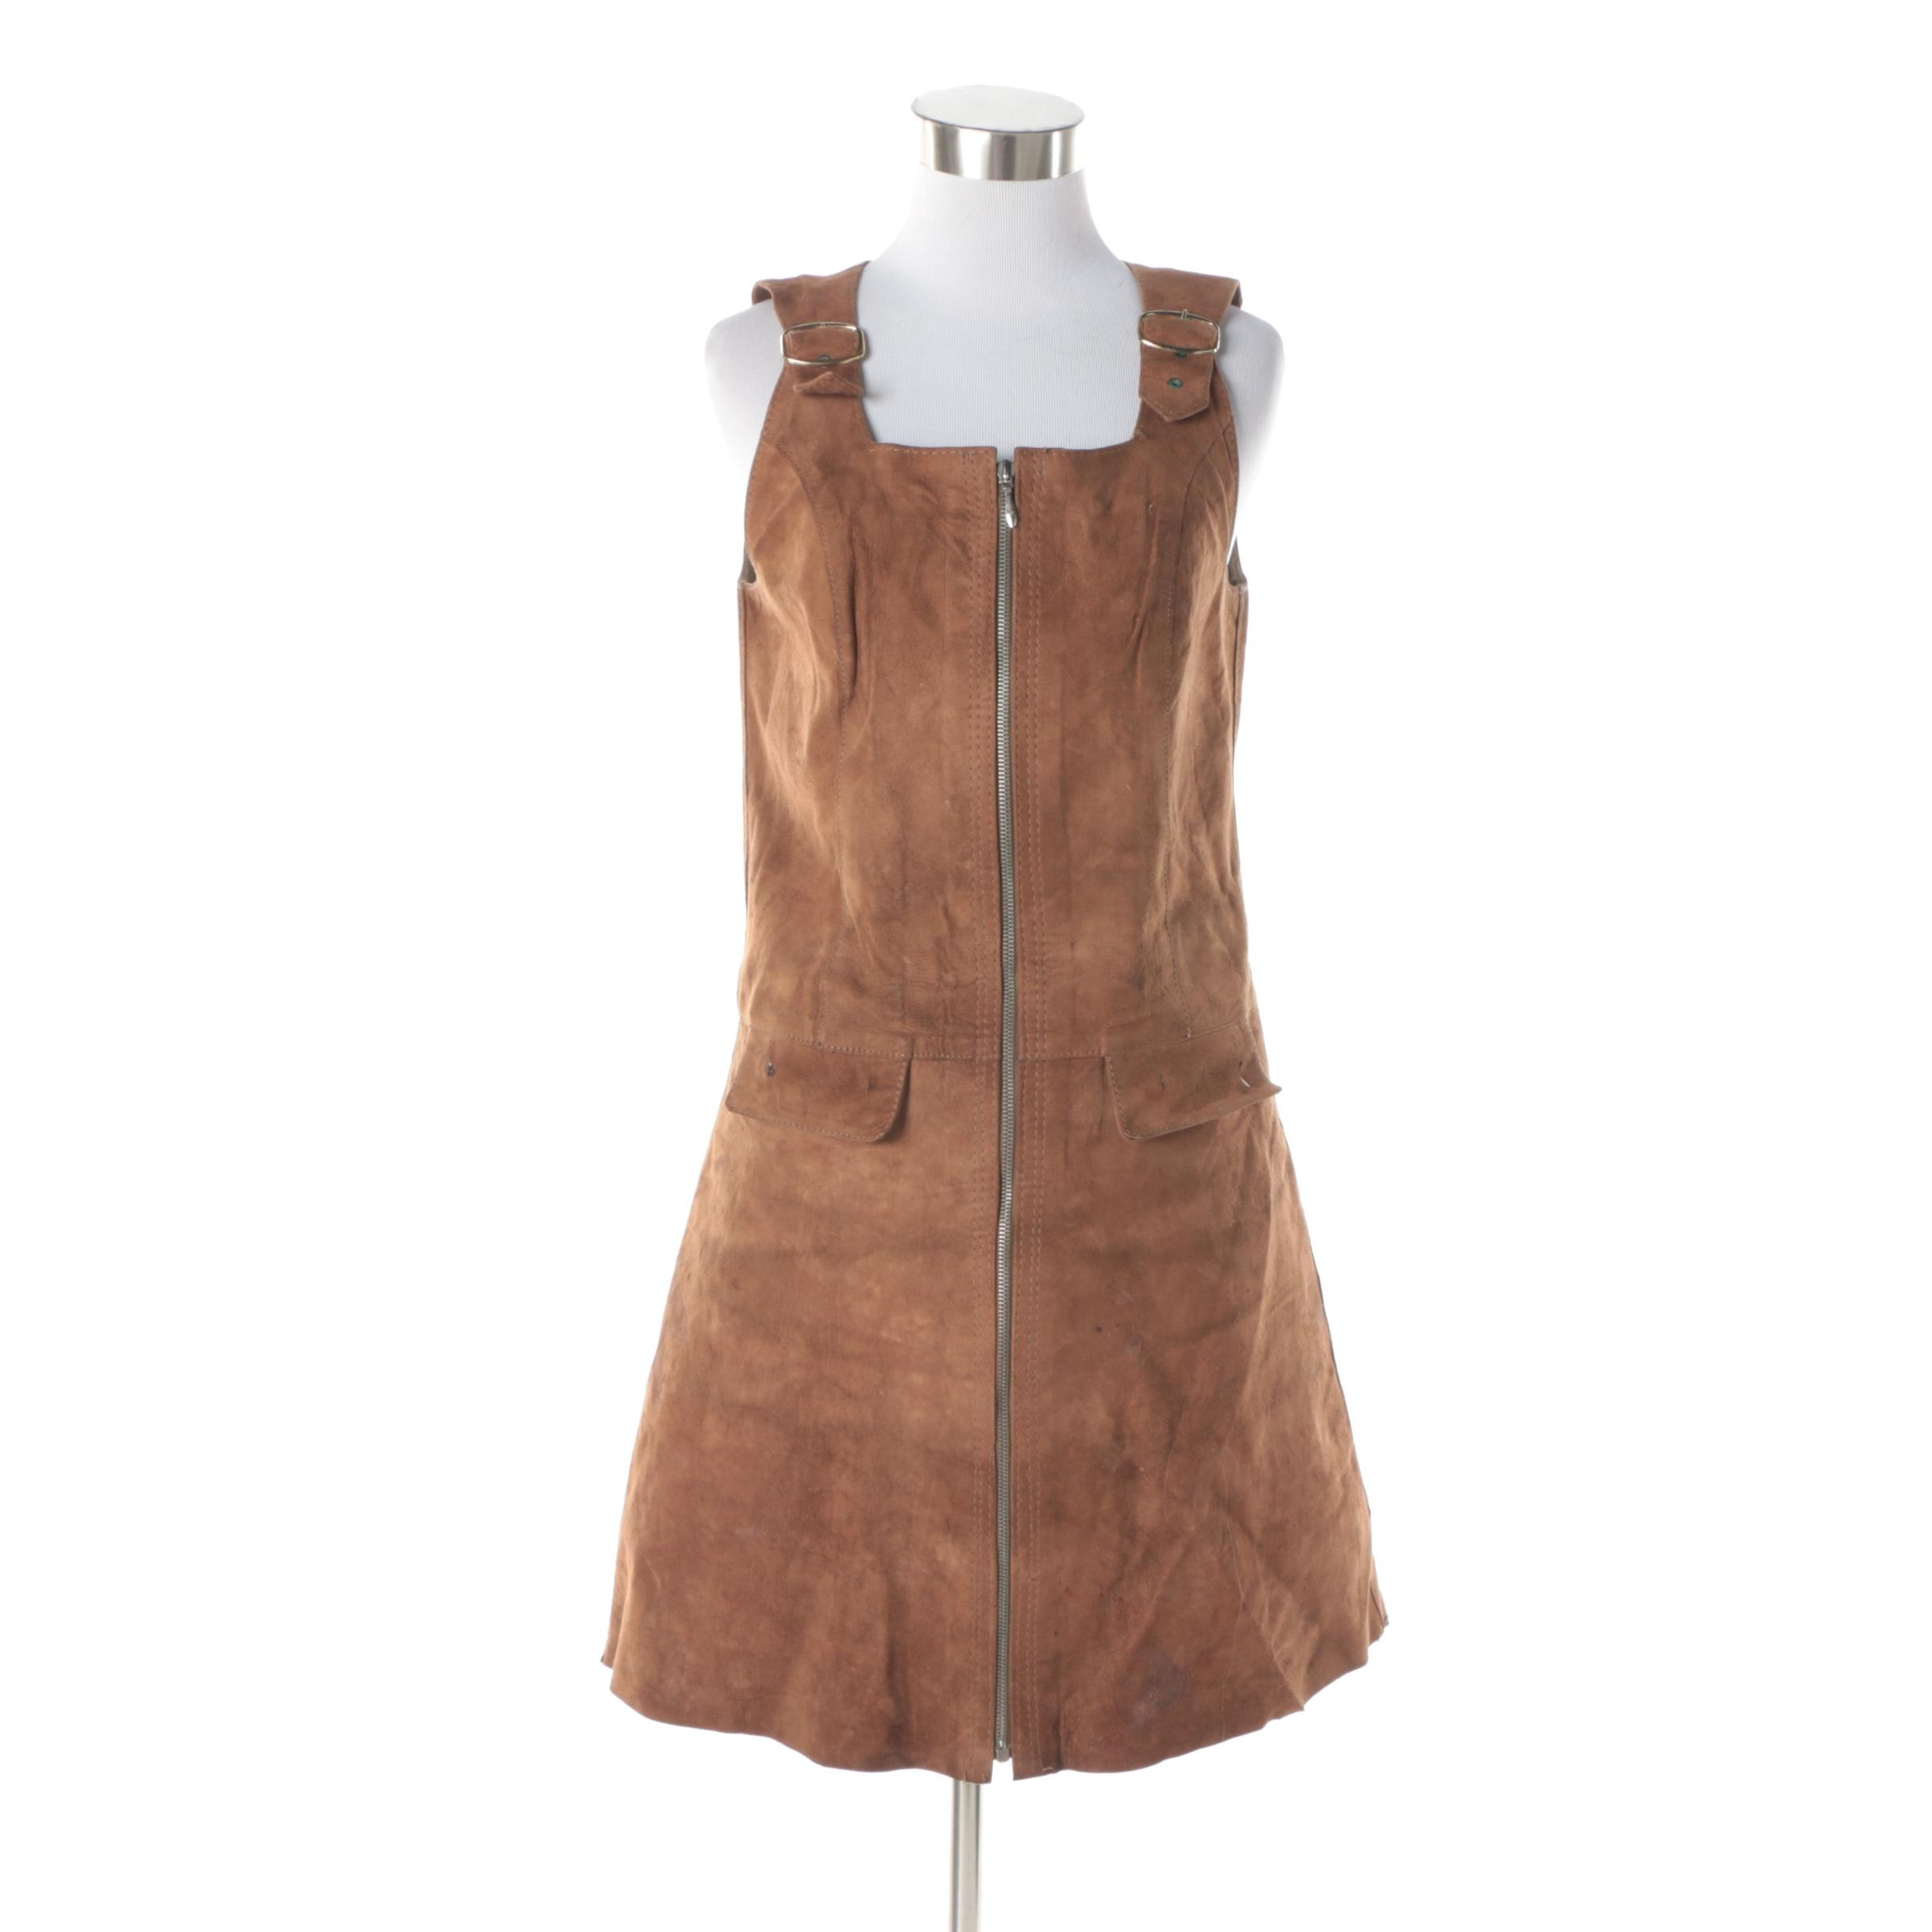 Women's Vintage Brown Suede Sleeveless Overall Dress